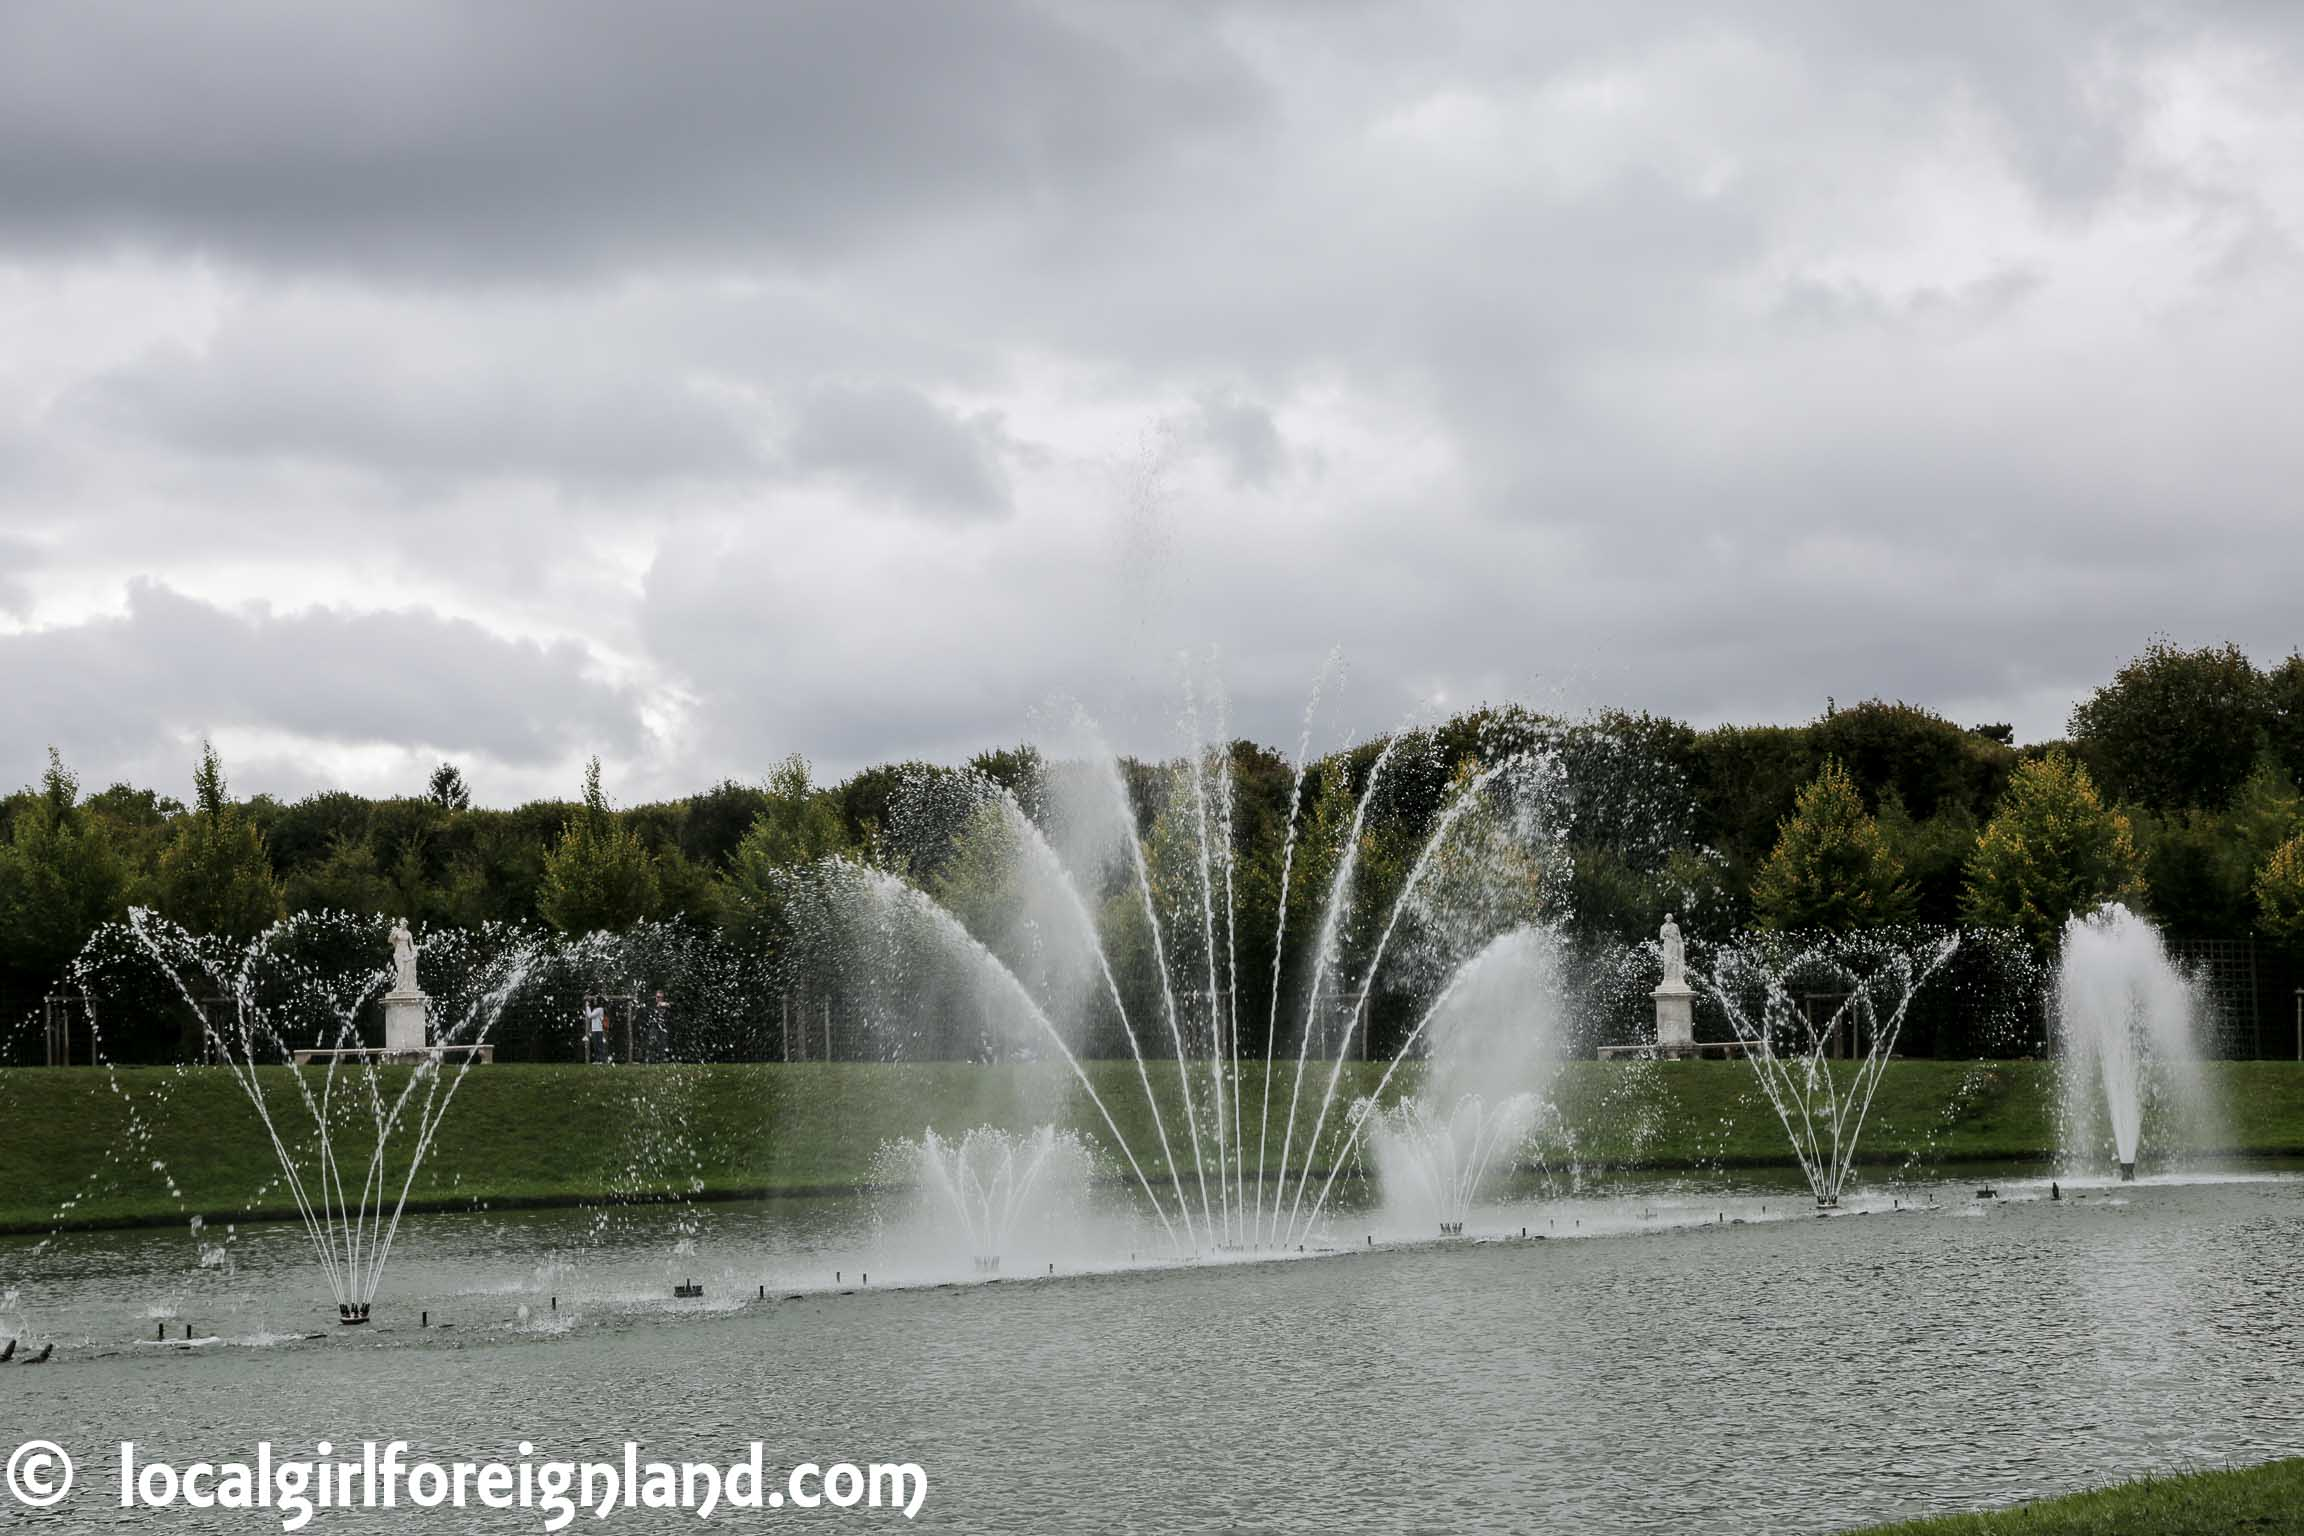 Palace-of-Versailles-garden-8447